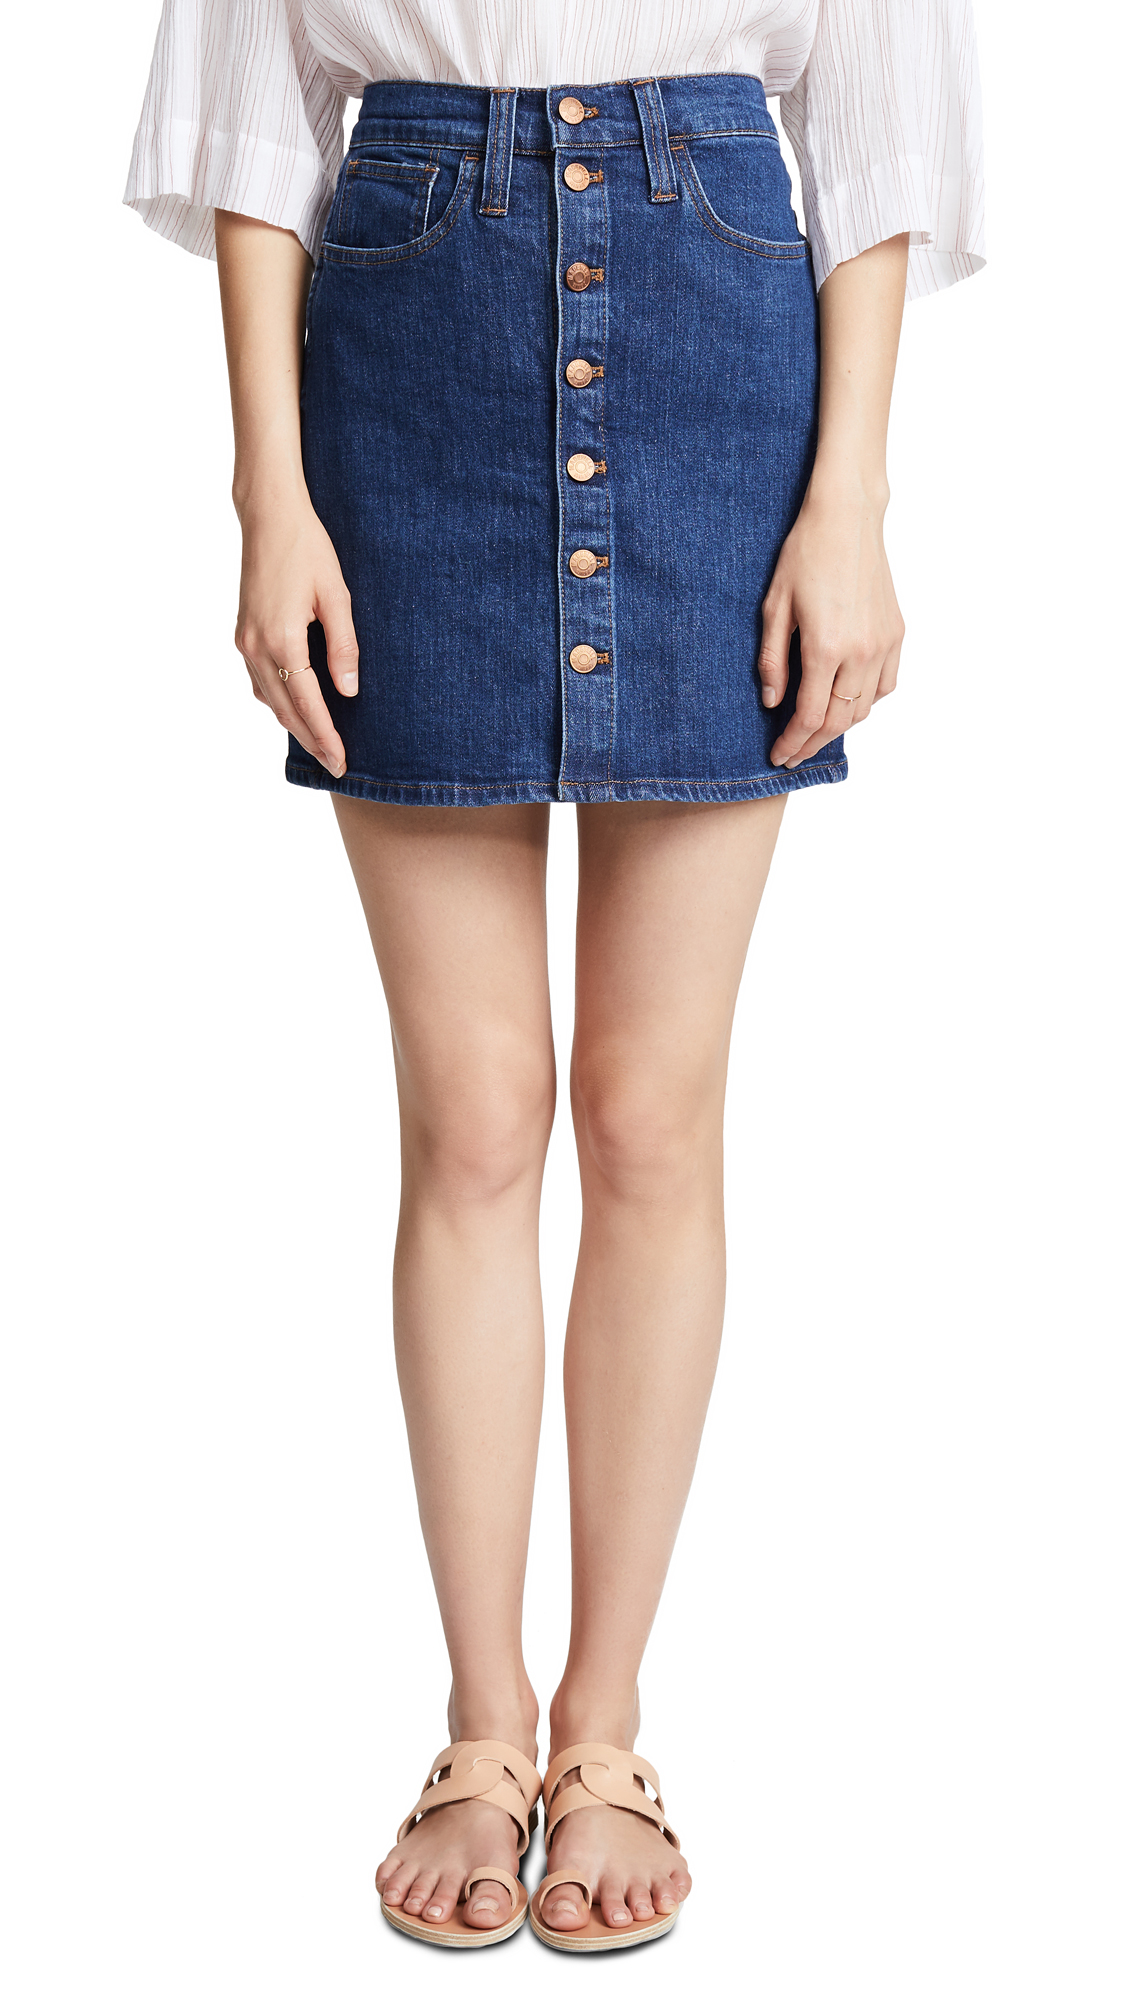 Madewell Arroyo Jean Skirt In Indigo